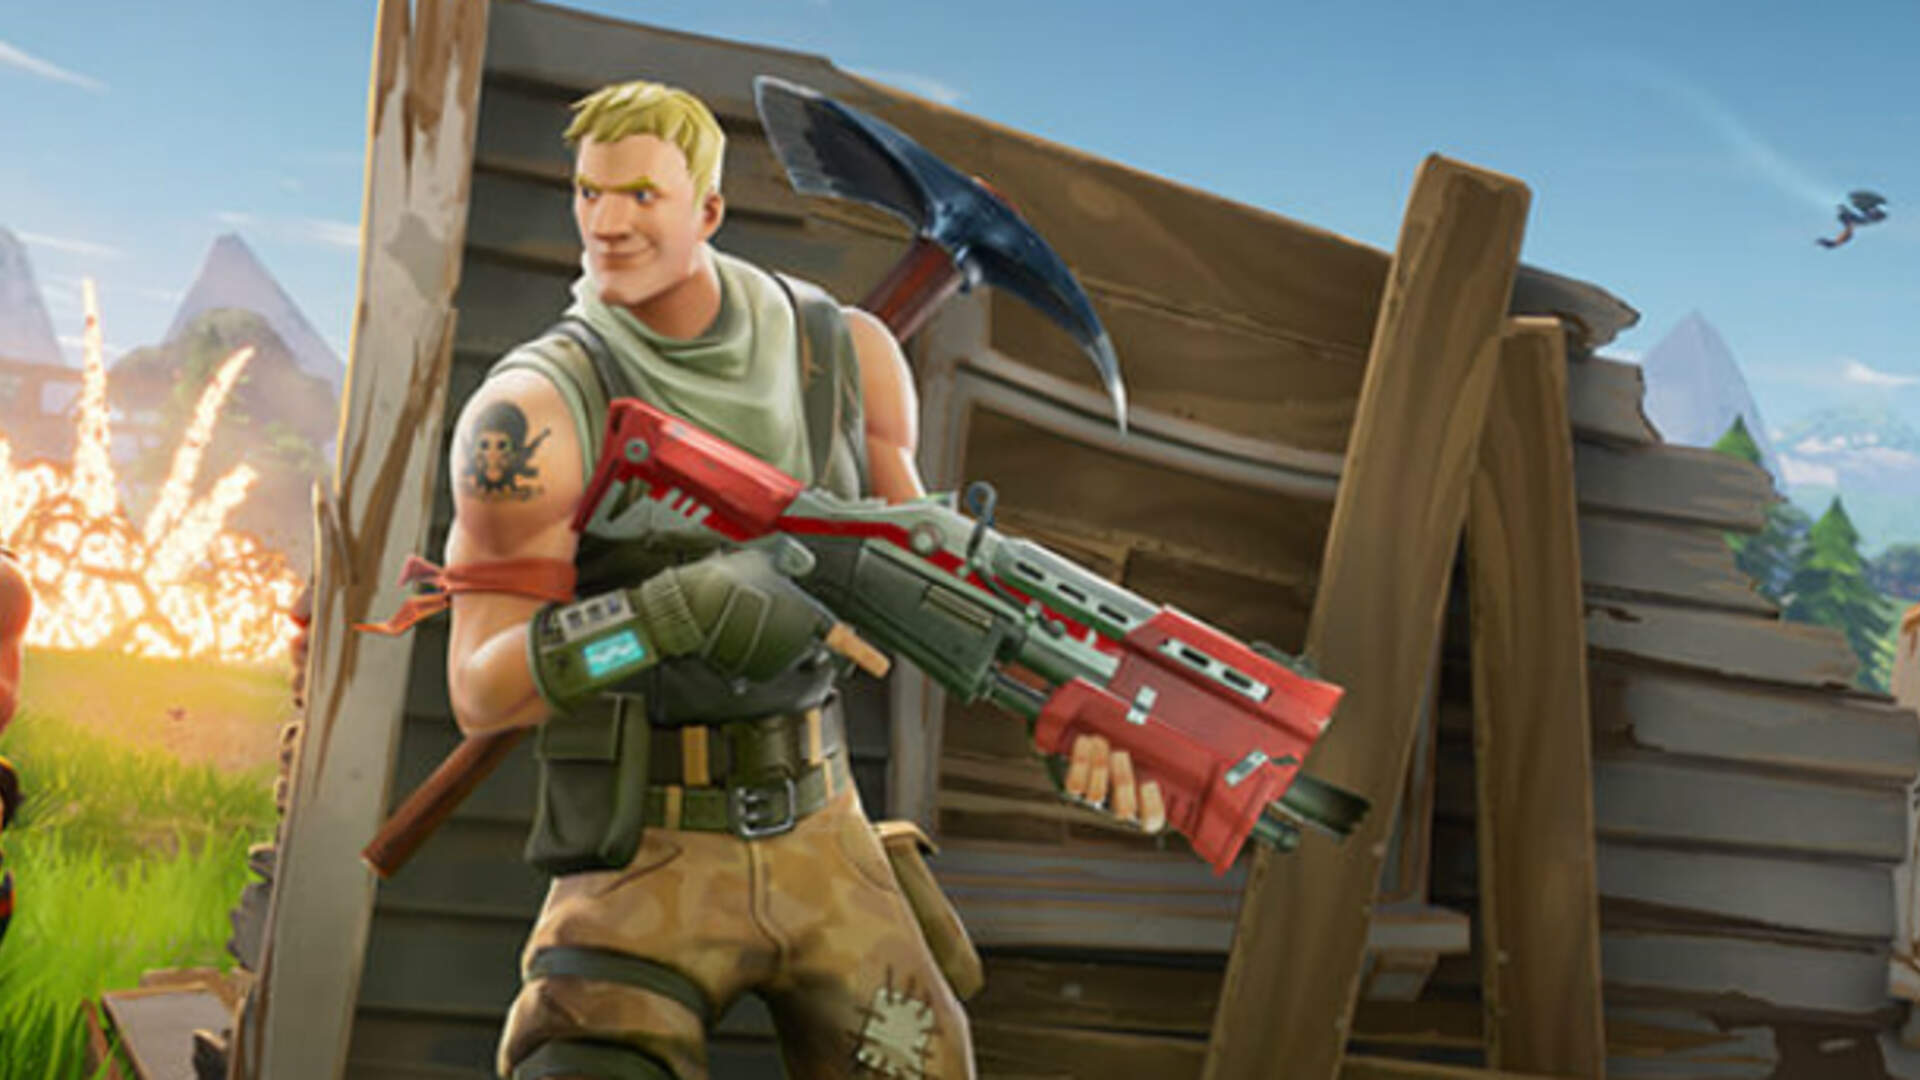 Portable Rifts are Set to Arrive in Fortnite, Patch V5.30 Coming Thursday